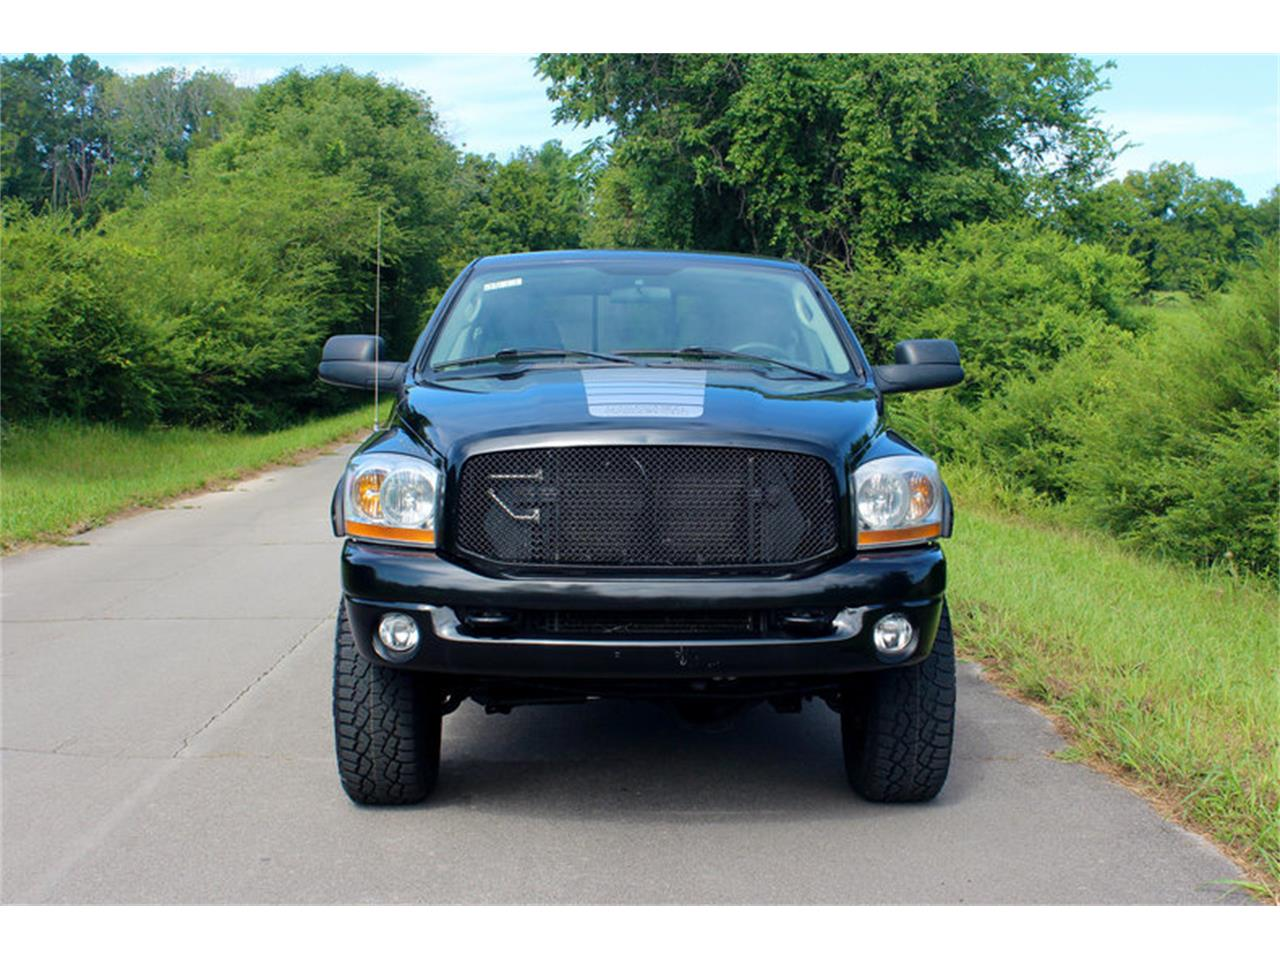 Large Picture of '06 Ram located in Tennessee - $17,500.00 - O91U